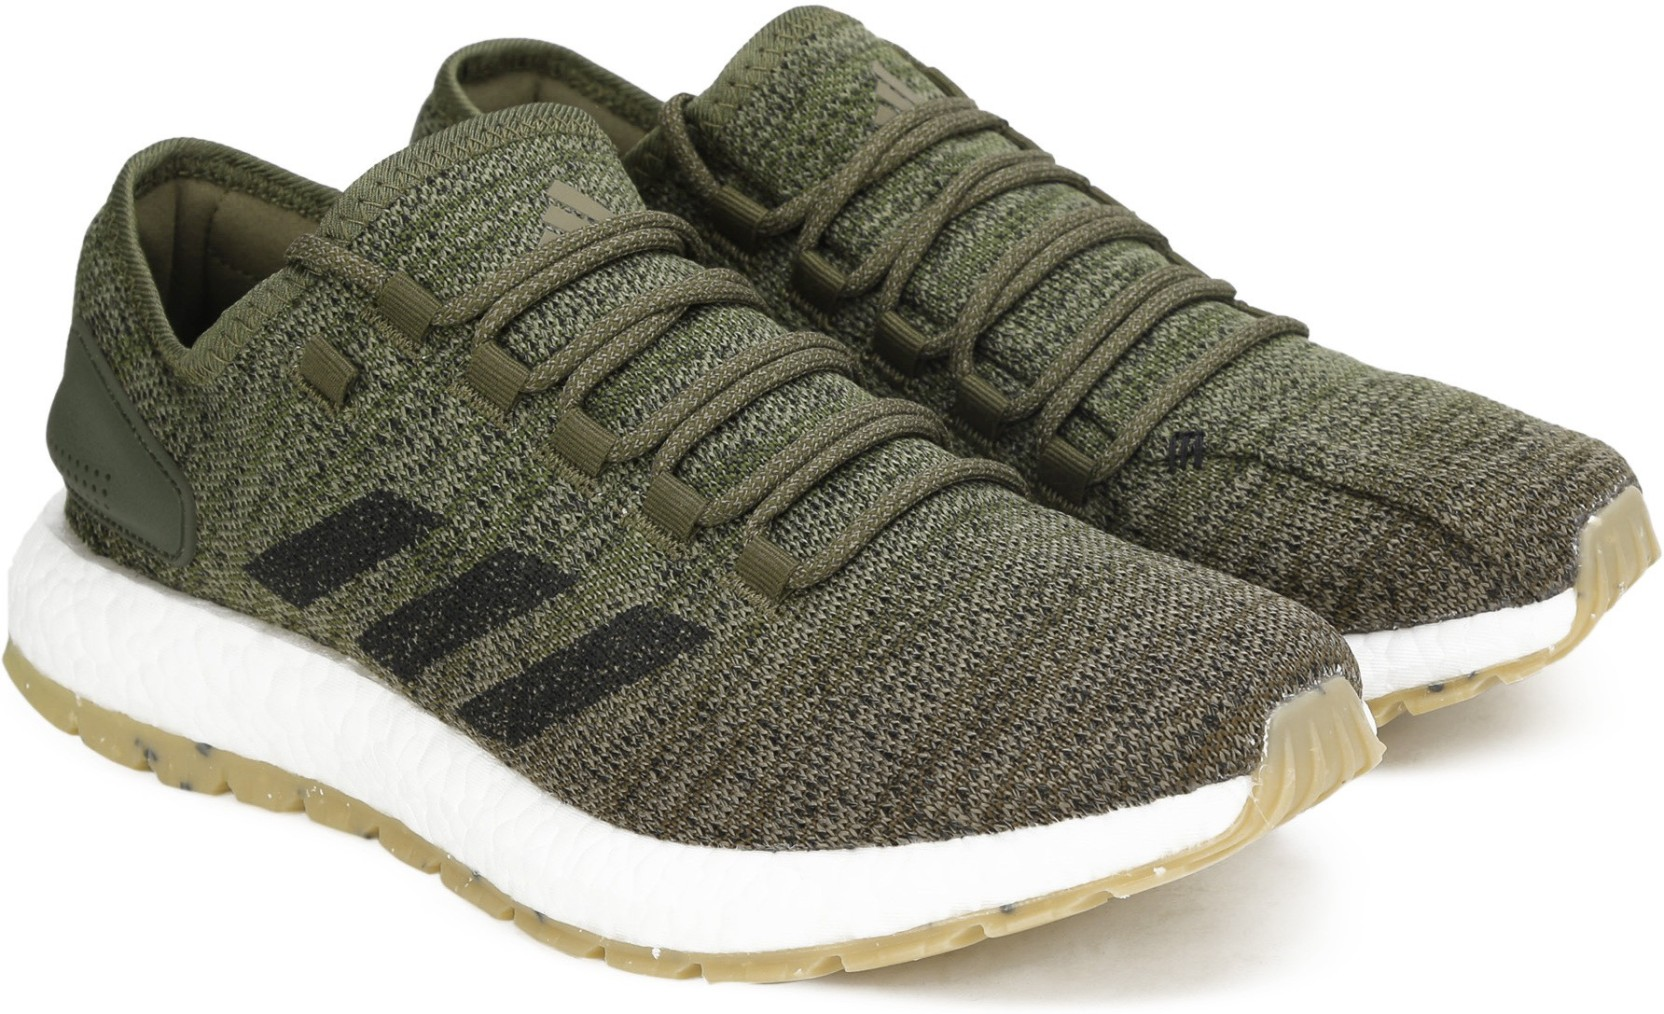 1a306547a ADIDAS PUREBOOST ALL TERRAIN Running Shoes For Men - Buy TRACAR ...